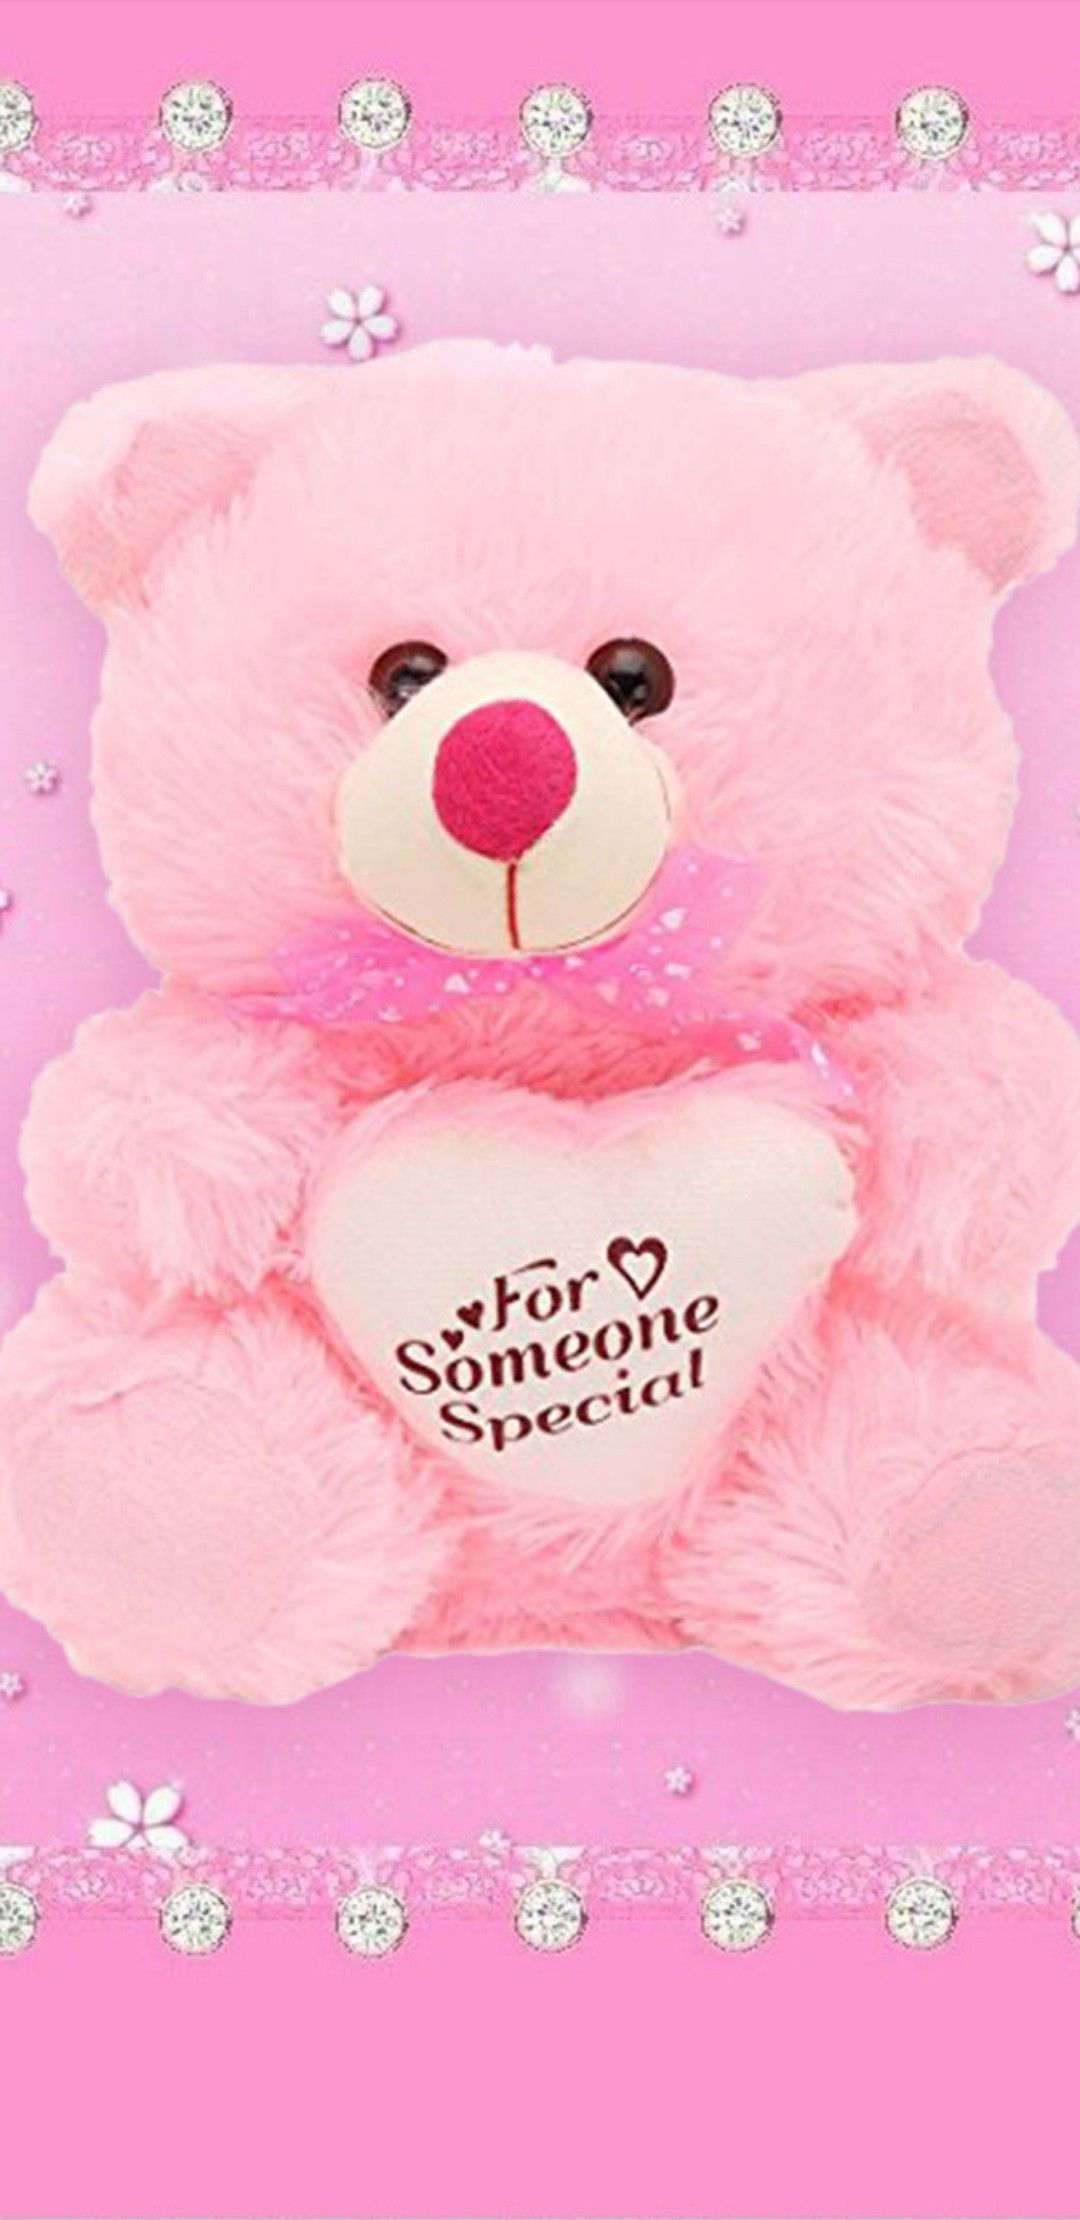 Pin By Kathy Beckwith On Girly Droid Wallpapers Teddy Bear Wallpaper Bear Wallpaper Brat Doll